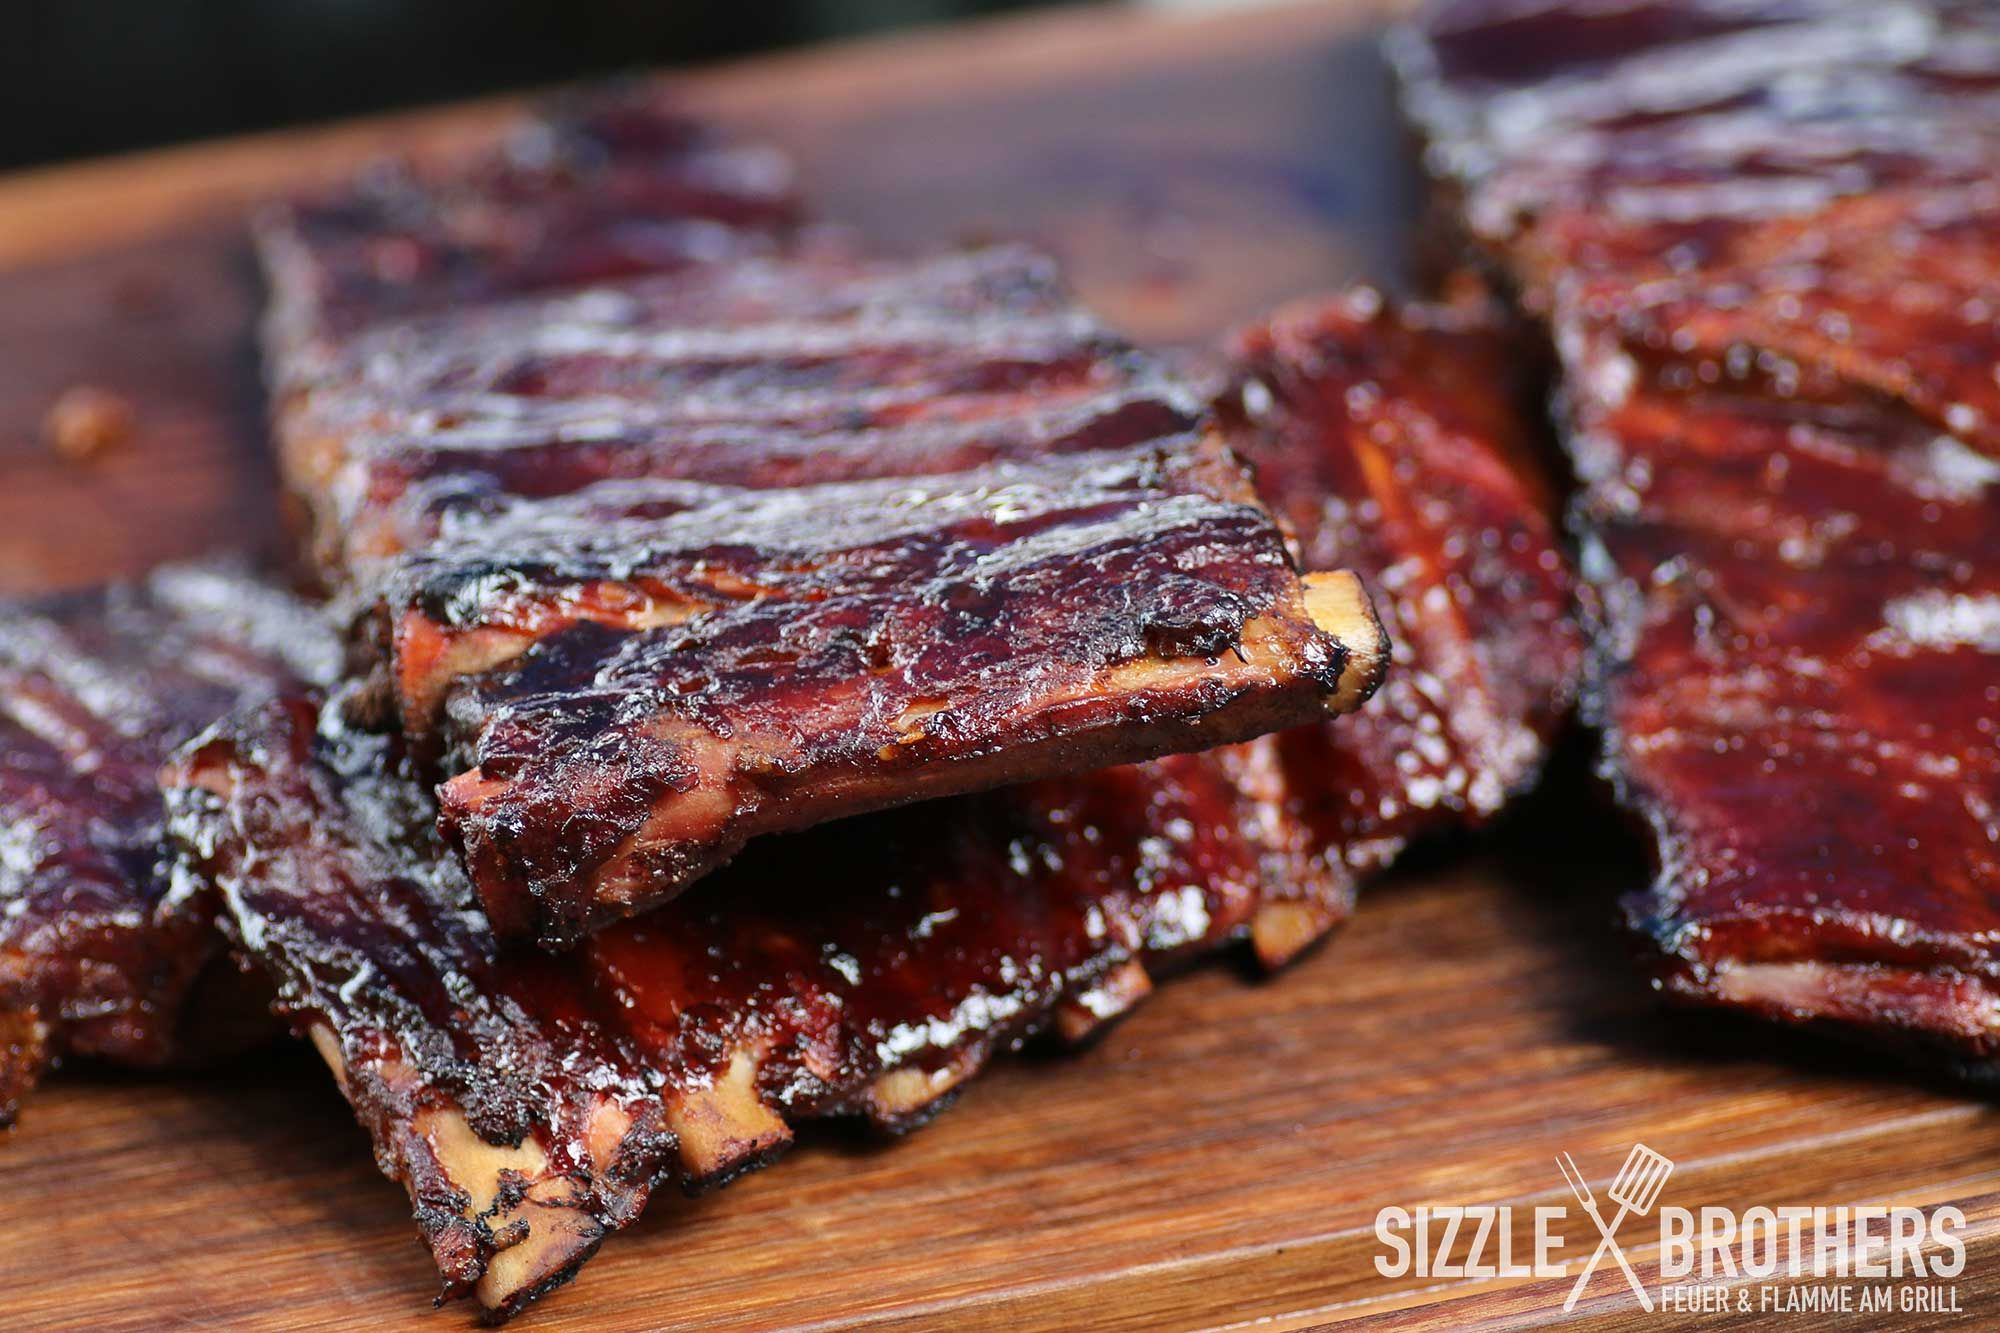 Sizzle Brothers Spareribs Vom Gasgrill : Sizzlebrothers sizzlebrothers auf